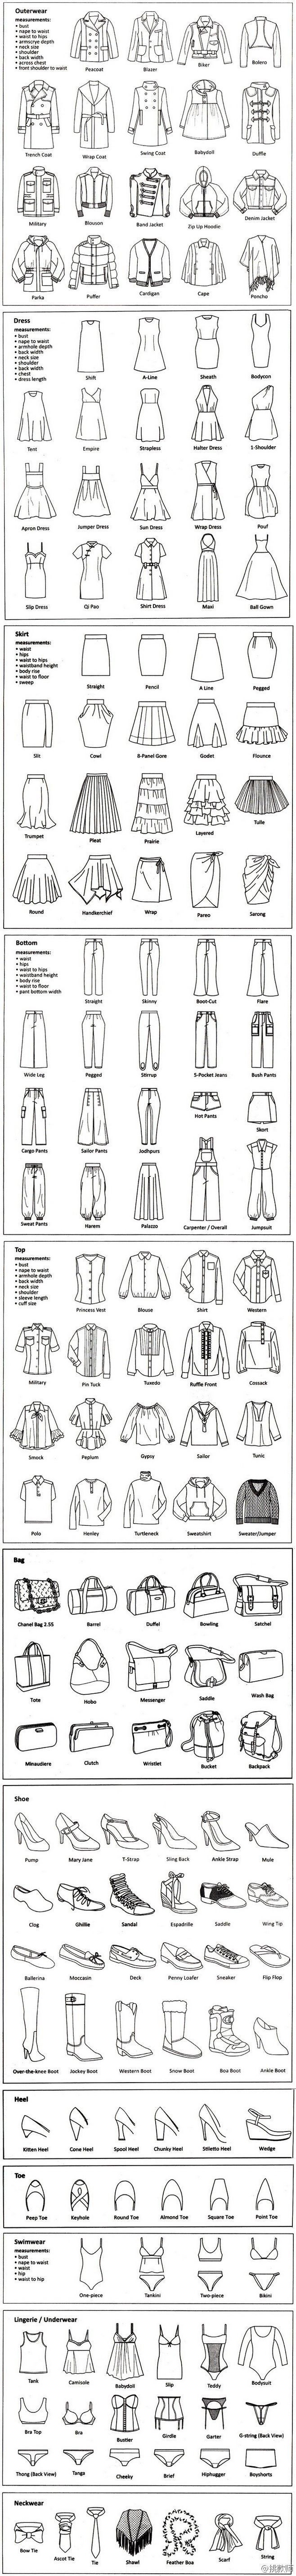 Fashion Terminology: Pin this so that you always have the correct fashion terminology when you want to do a query.